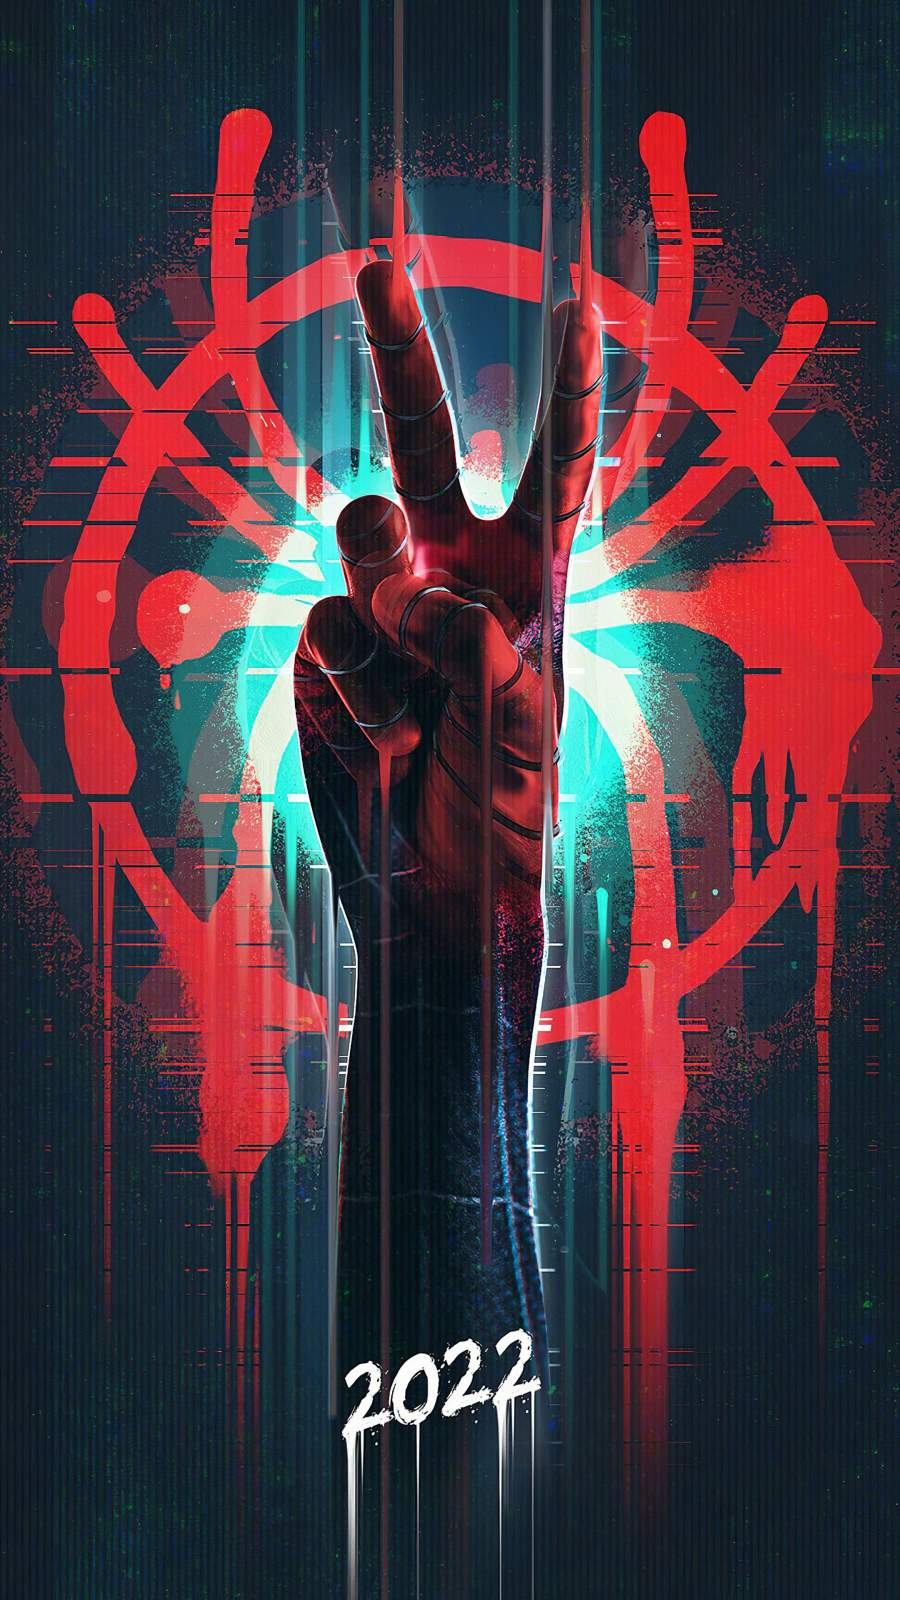 Spiderman 2022 iPhone Wallpaper